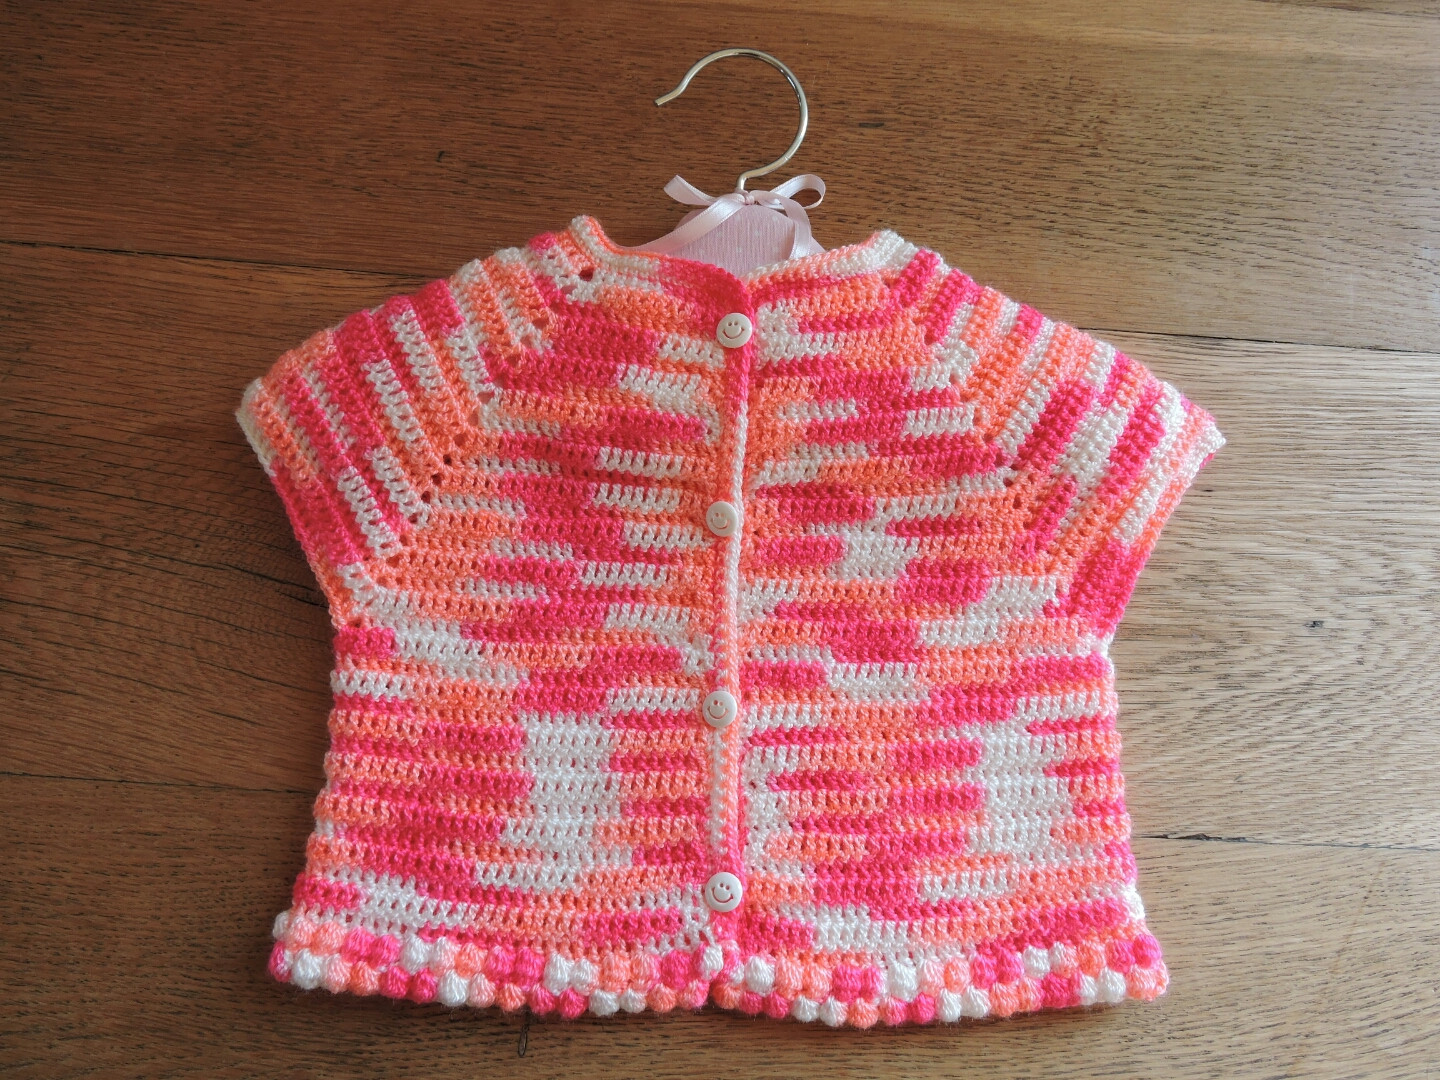 Crochet Baby Cardigan Inspirational Free Crochet Patterns for Baby Cardigans Dancox for Of Amazing 49 Pics Crochet Baby Cardigan